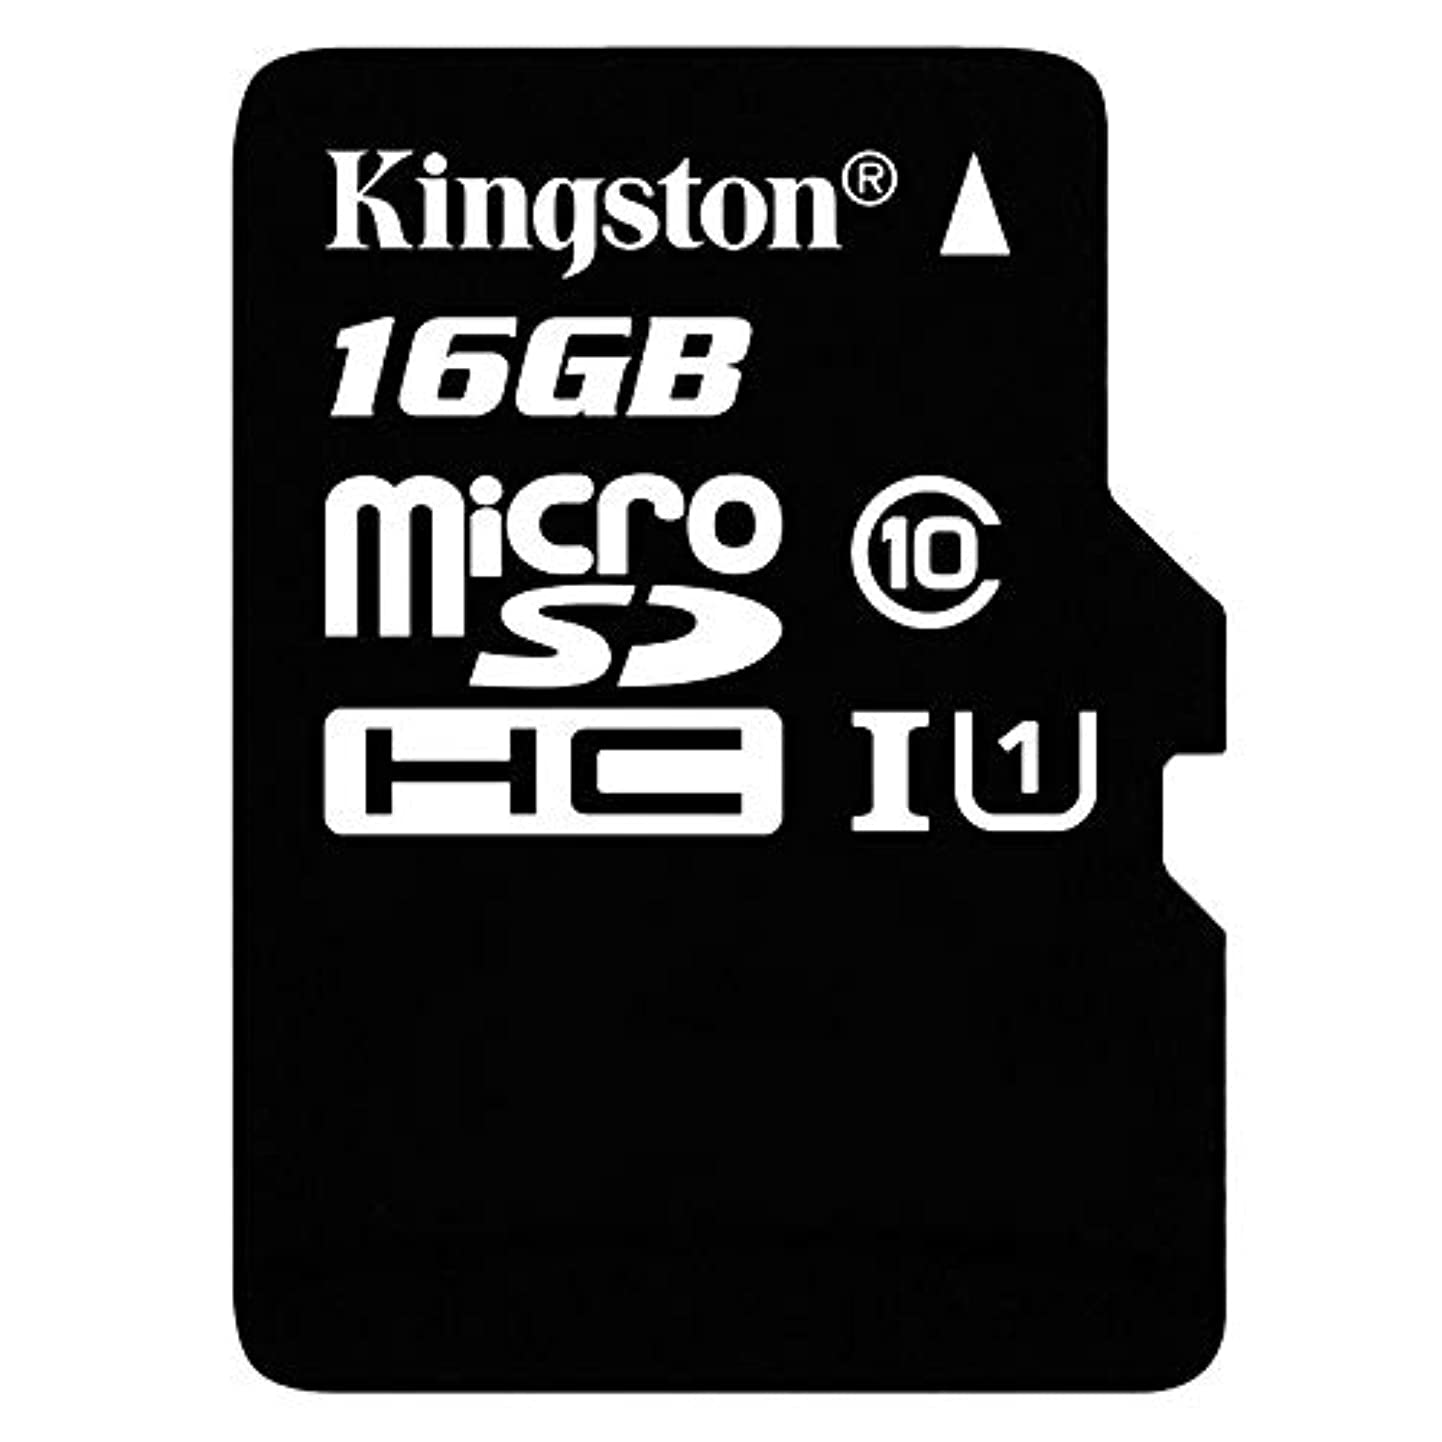 Professional Kingston 16GB BLU Grand M2 LTE MicroSDHC Card with Custom formatting and Standard SD Adapter! (Class 10, UHS-I) uoiermnbwes1